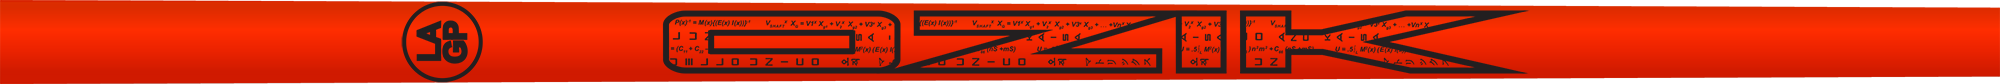 Ozik White Tie: Ferrari Red Black Satin - Wood 70 S